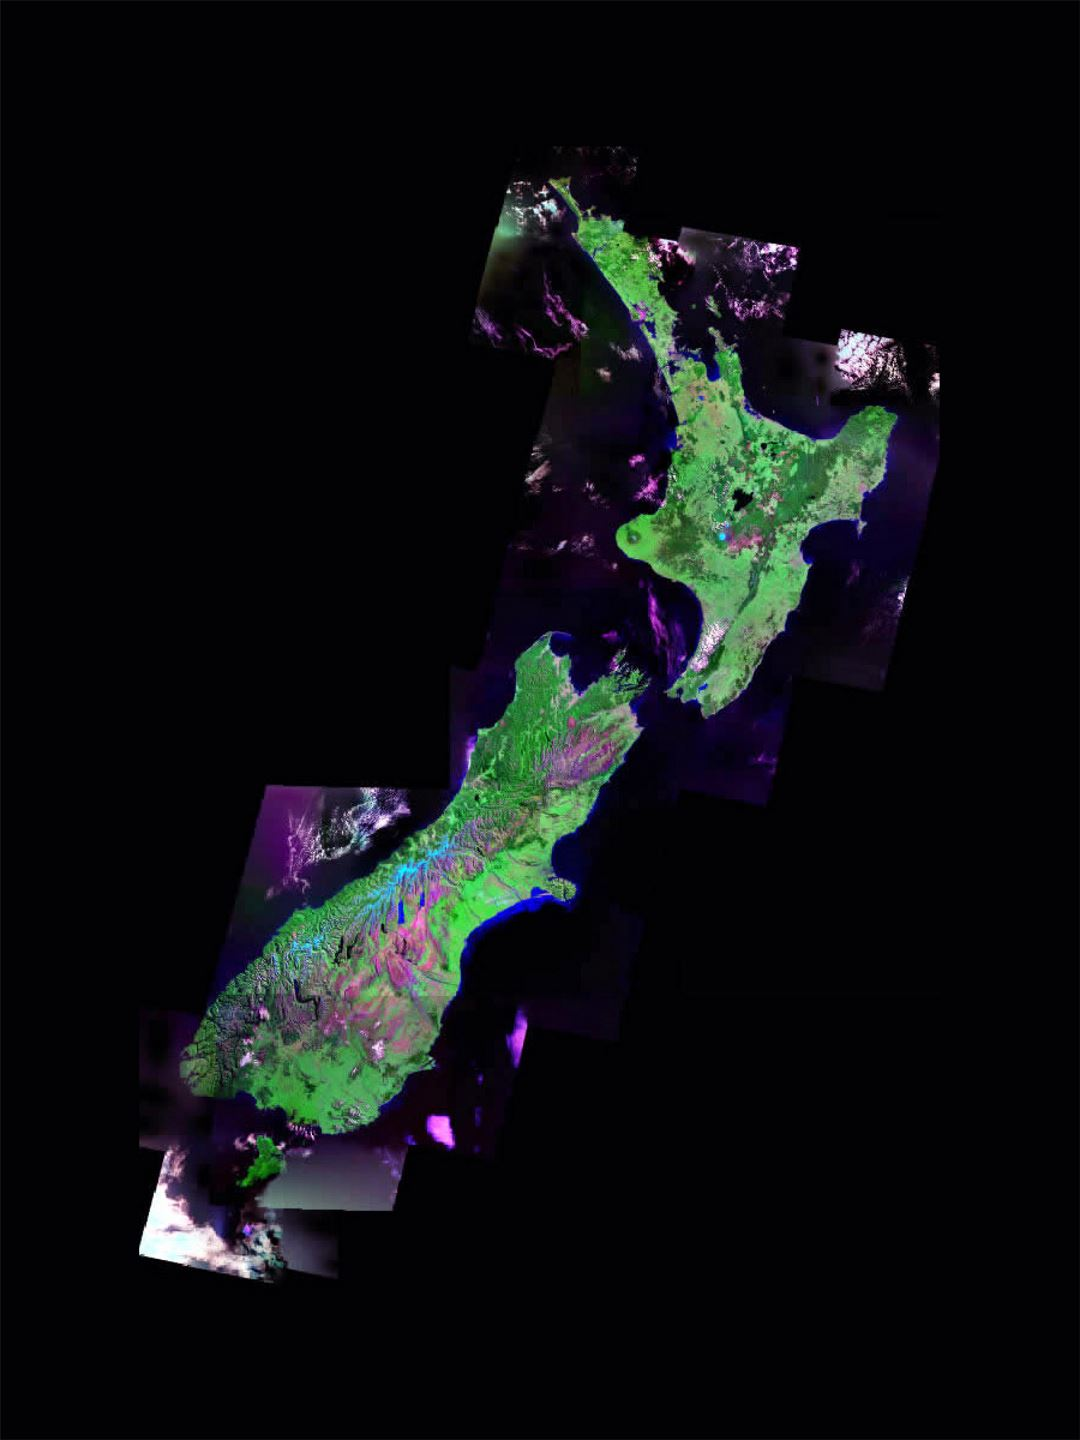 Small satellite image of New Zealand